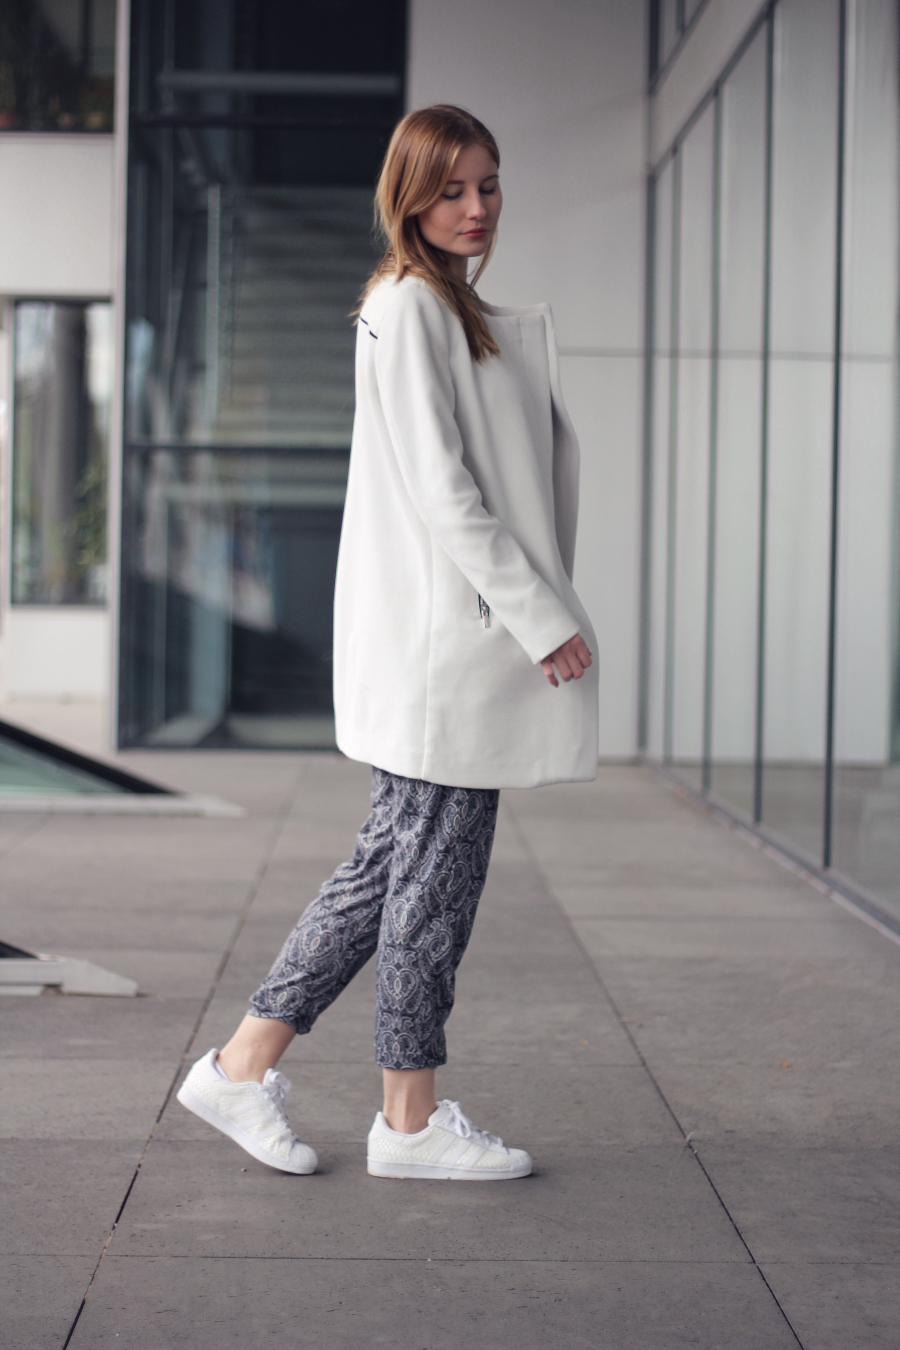 outfit hose paisley adidas originals sneaker trainer mantel coat weiß white